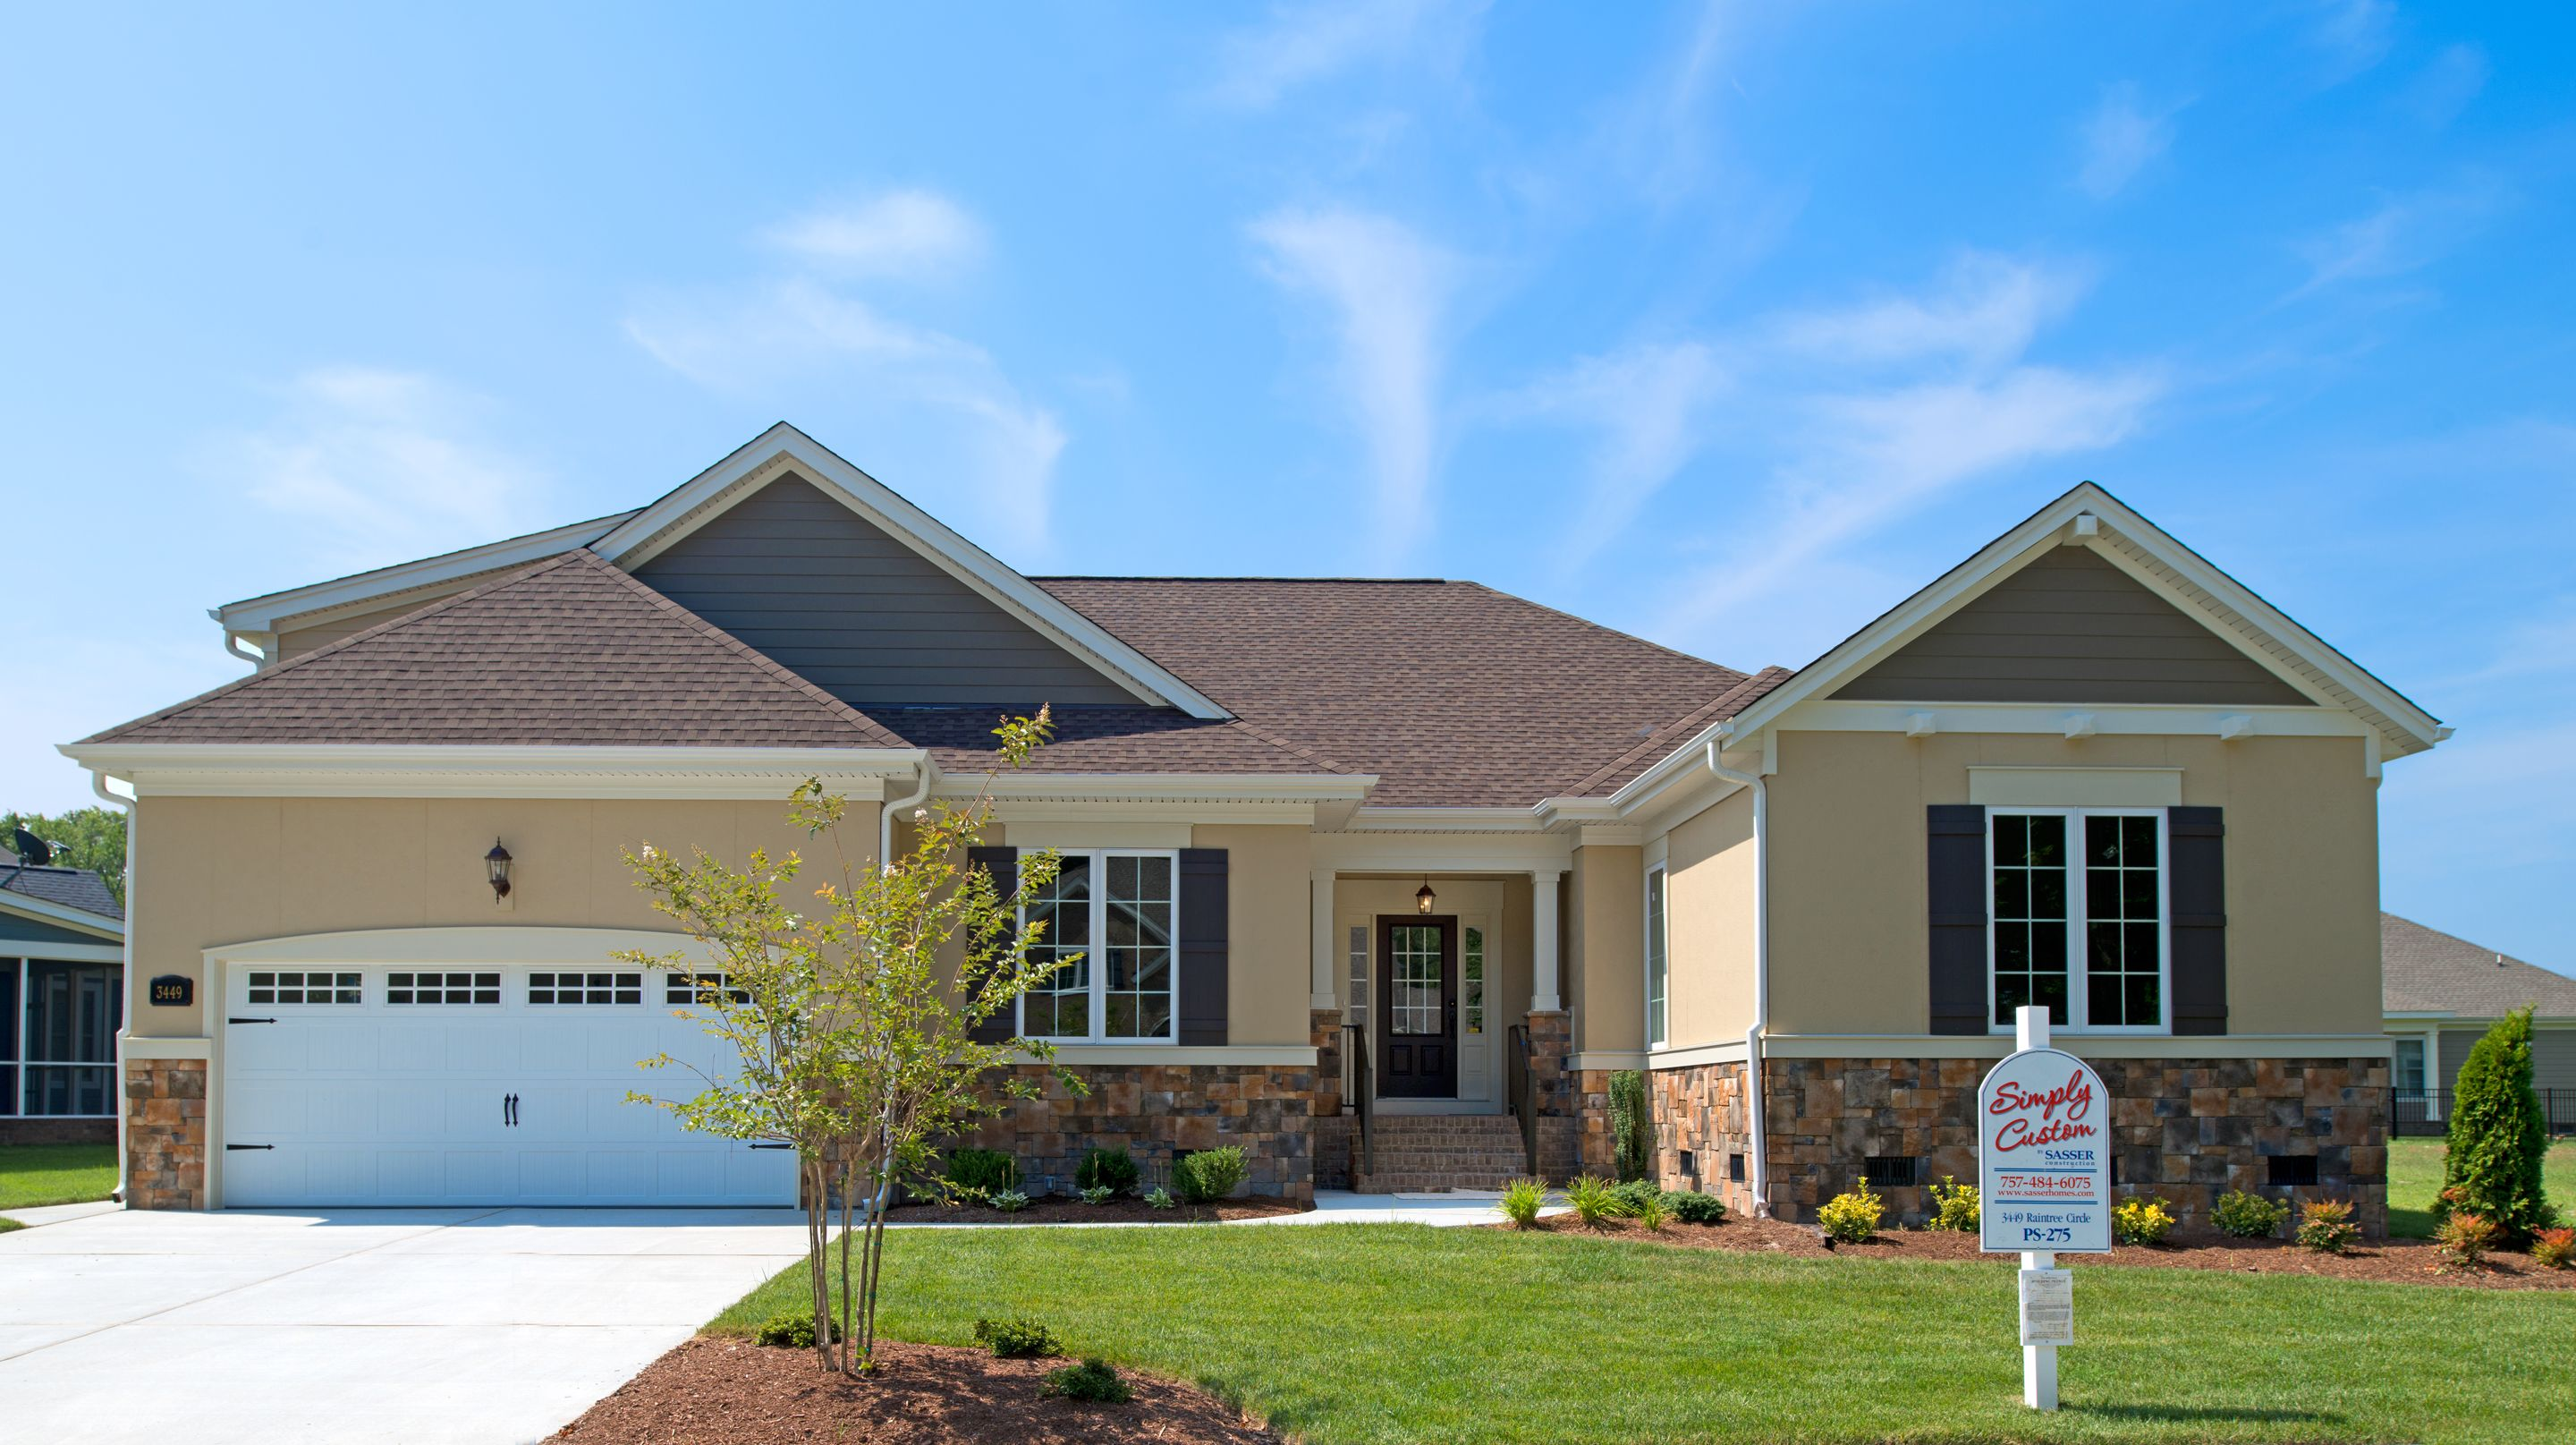 New Construction Homes For Sale Near Me